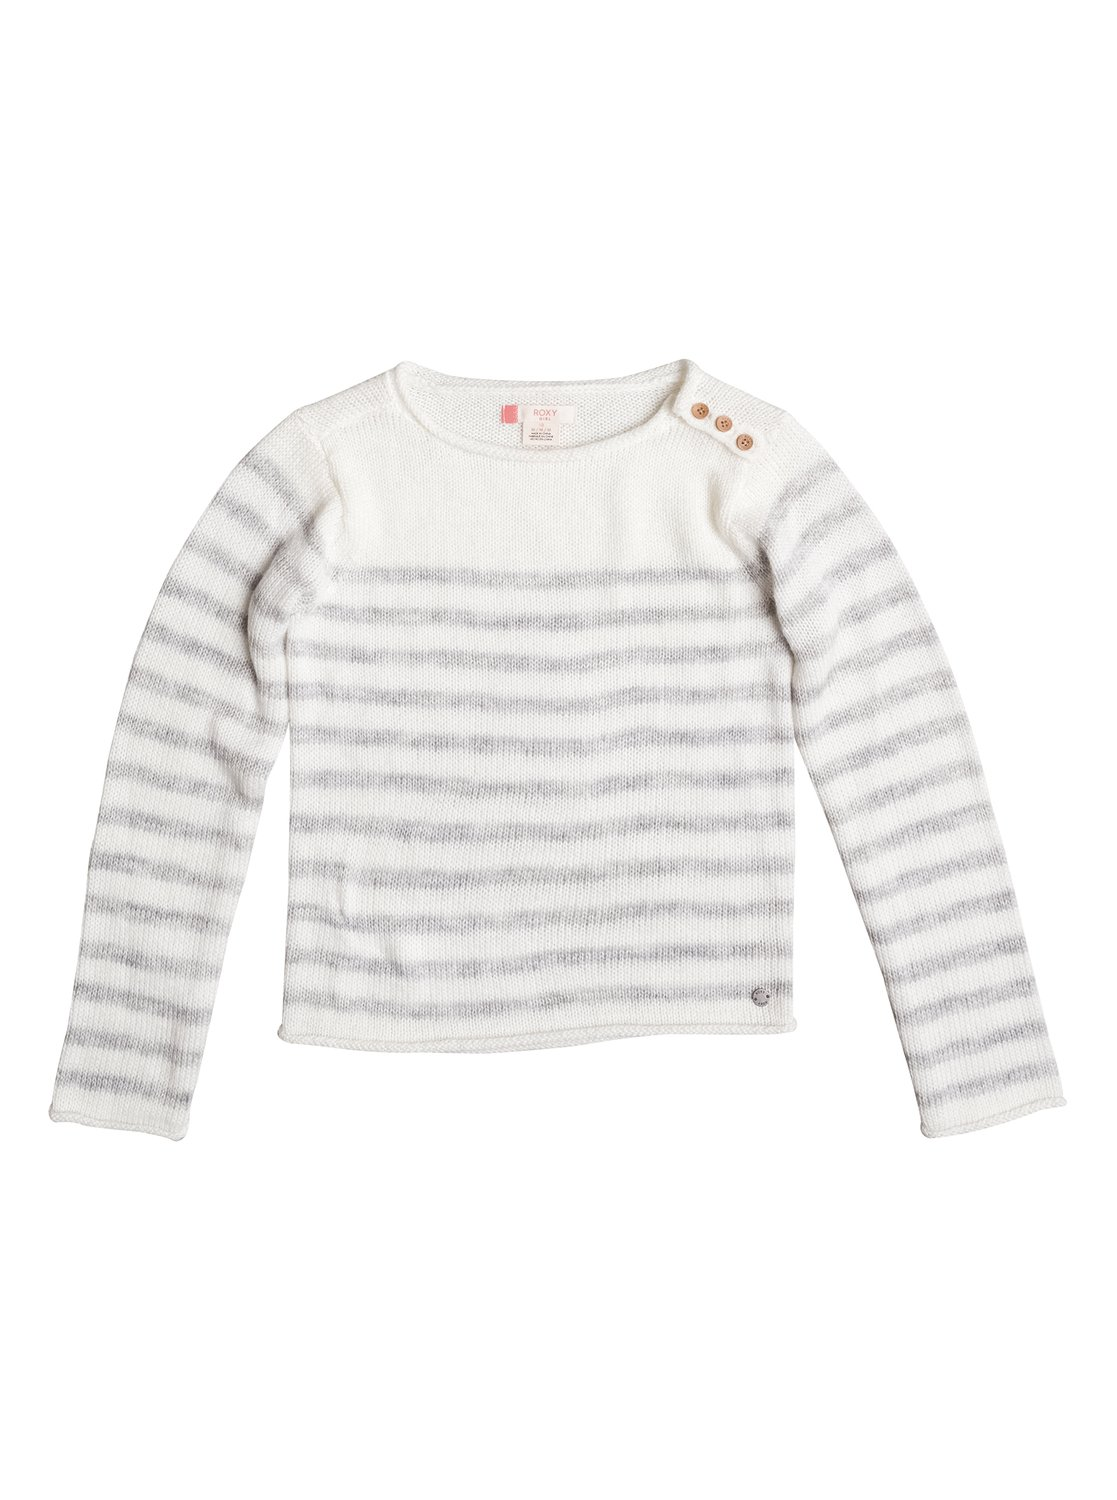 Ride This Vibe - Sweat pour Fille - Roxy